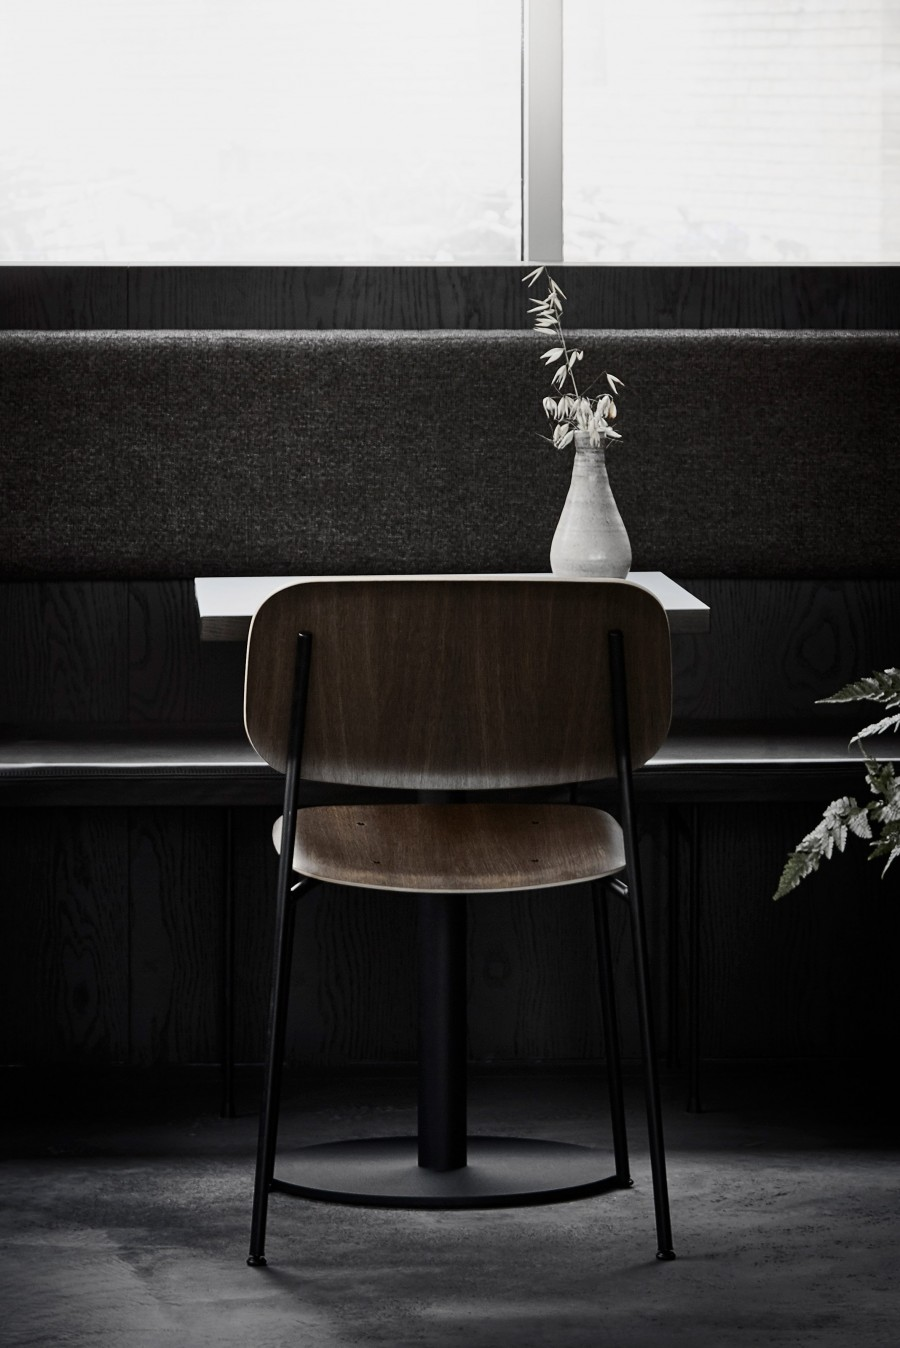 norm-architects-restaurant-aprilandmay7